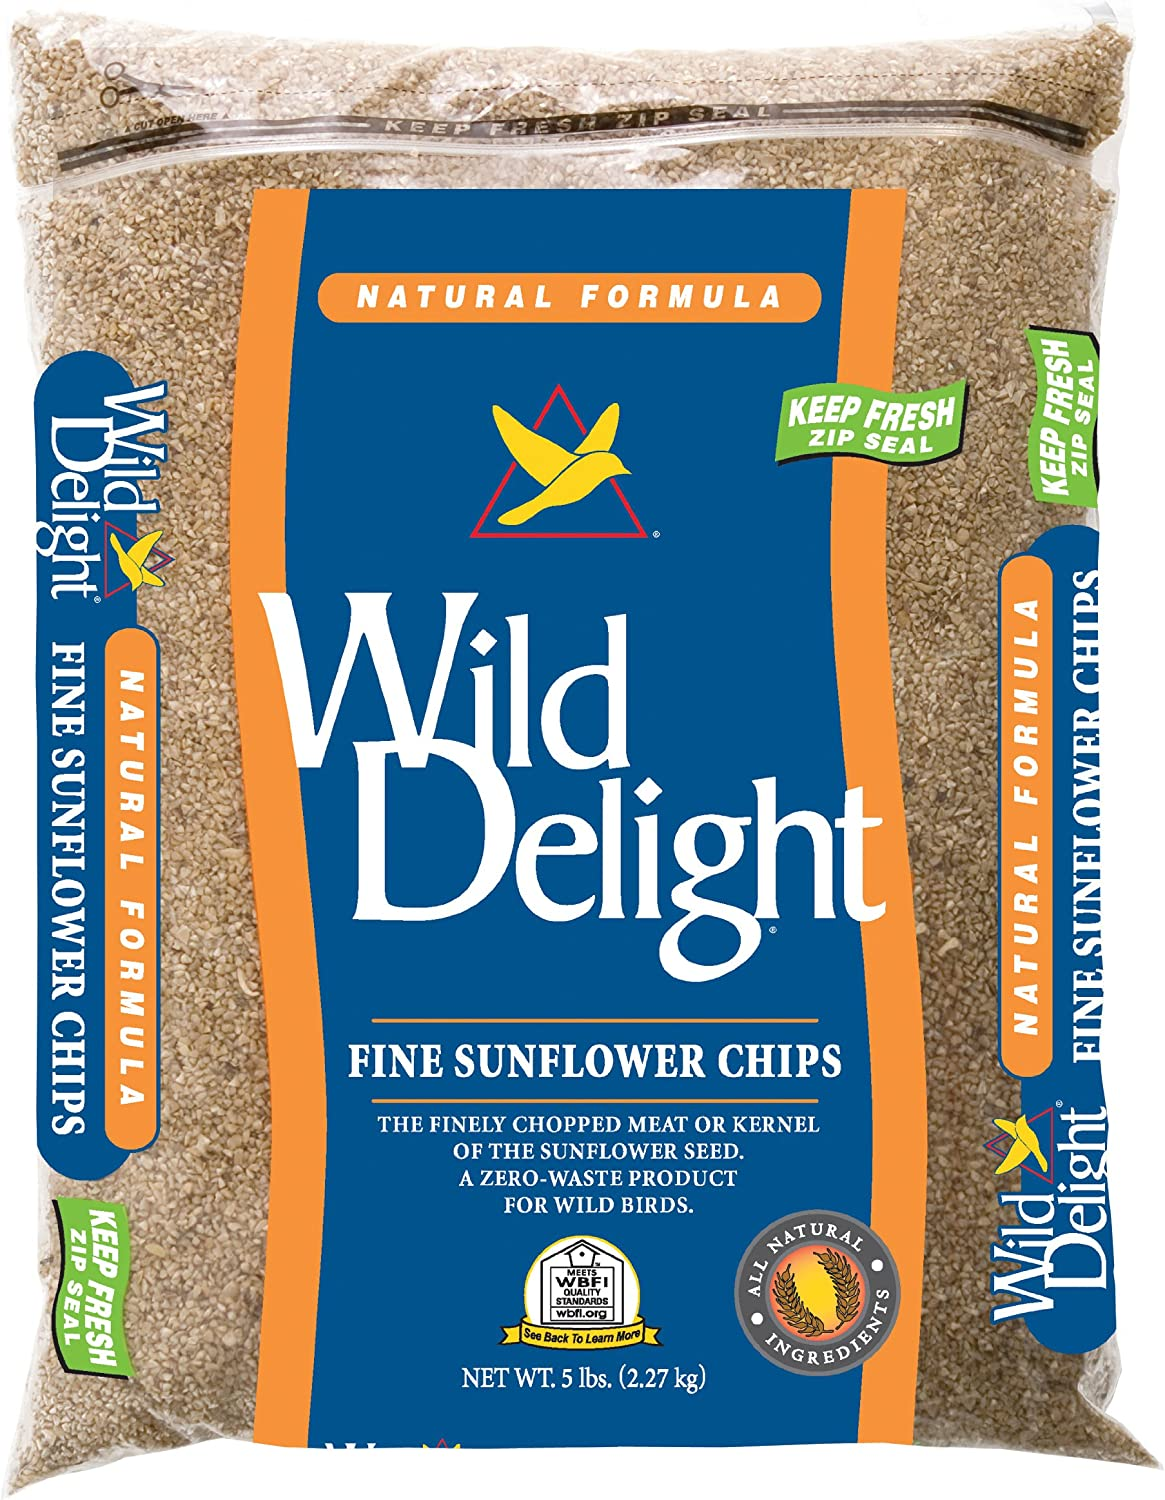 Wild Delight Fine Sunflower Chips, 5 lb